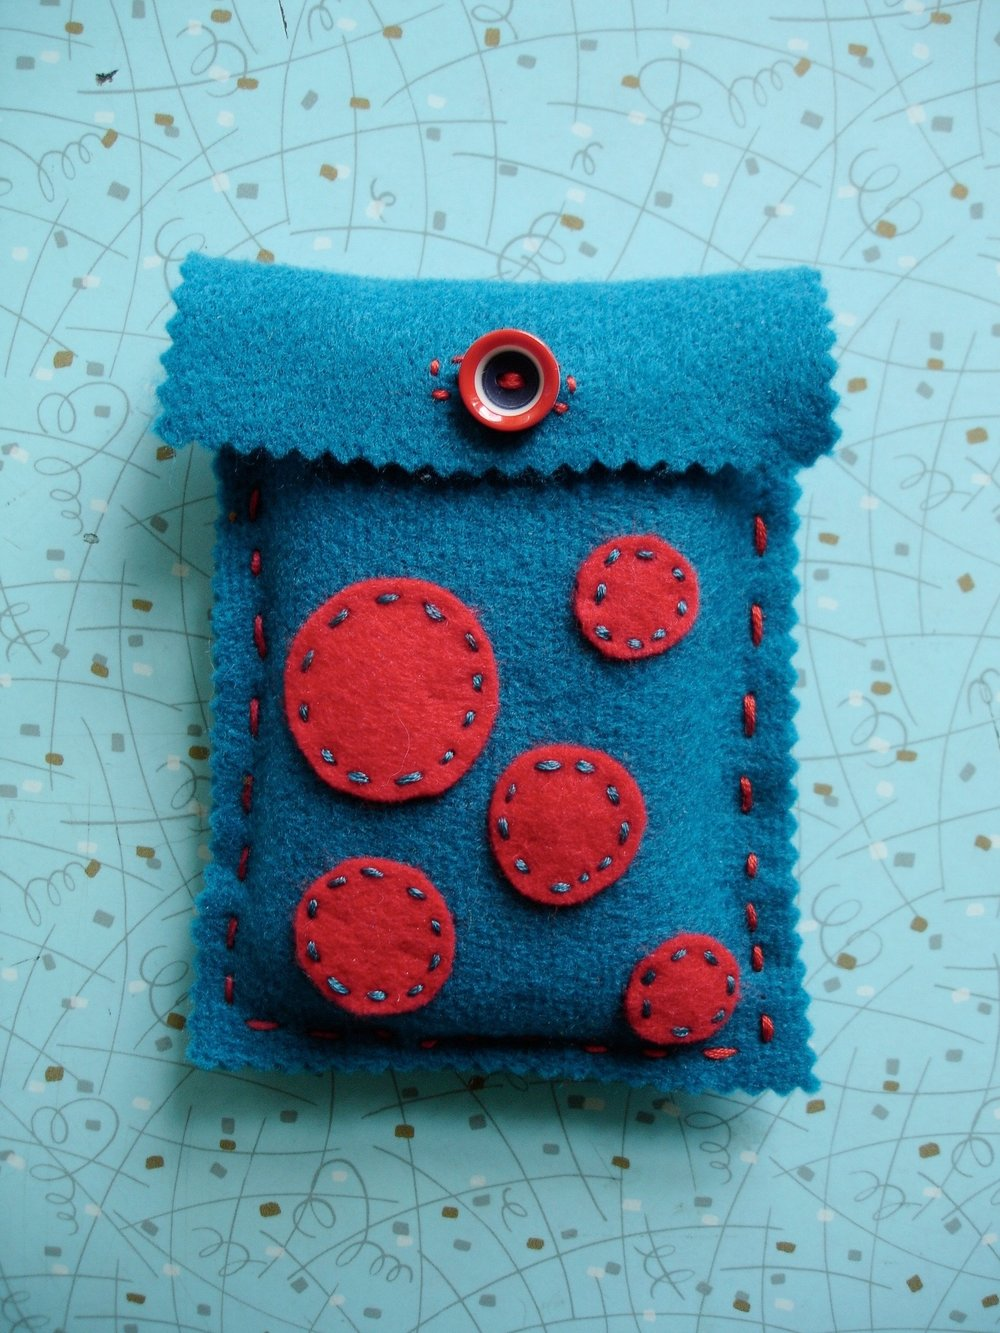 Felt Pouch - ages 8 and up - Design your own one of kind felt pouch! This project is perfect for storing your tech device, jewelry, legos and more! Kids will learn the basics of patterns and hand sewing to sew their pouch, and then finish off their designs with felt appliques, sparkles, pompoms, google eyes, trims and buttons. Your storage options just got a little bit more exciting!